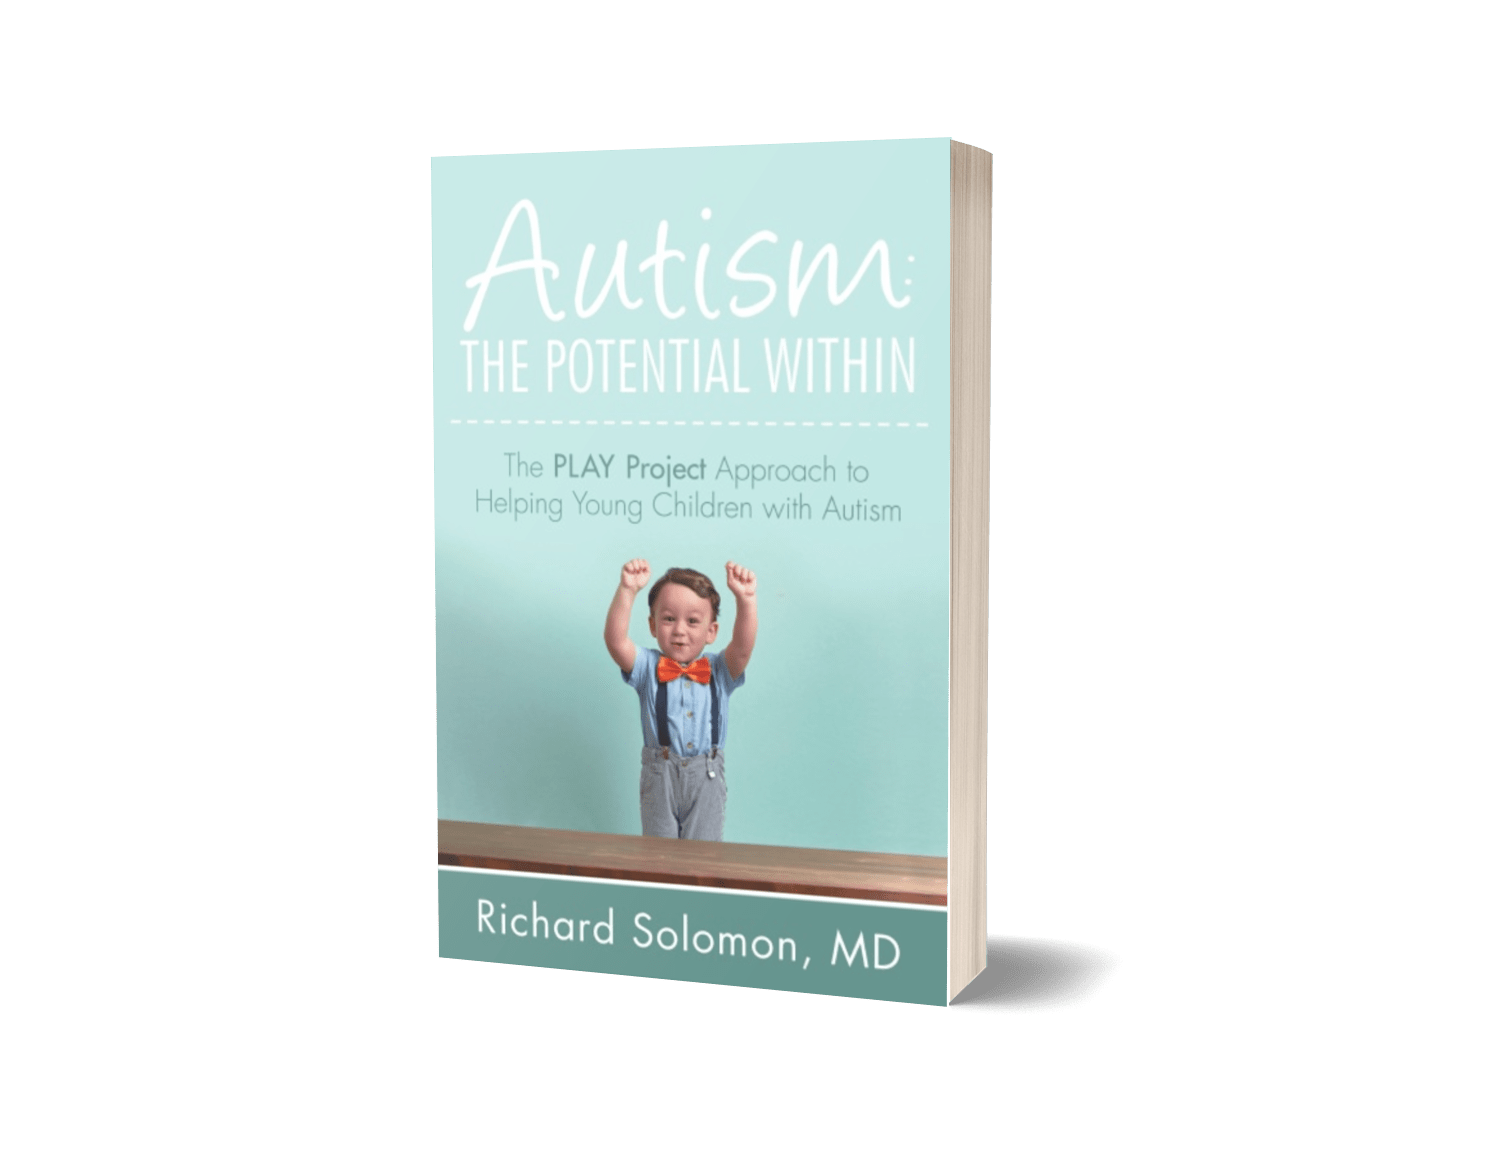 Autism: The Potential Within: The PLAY Project Approach to Helping Young Children with Autism